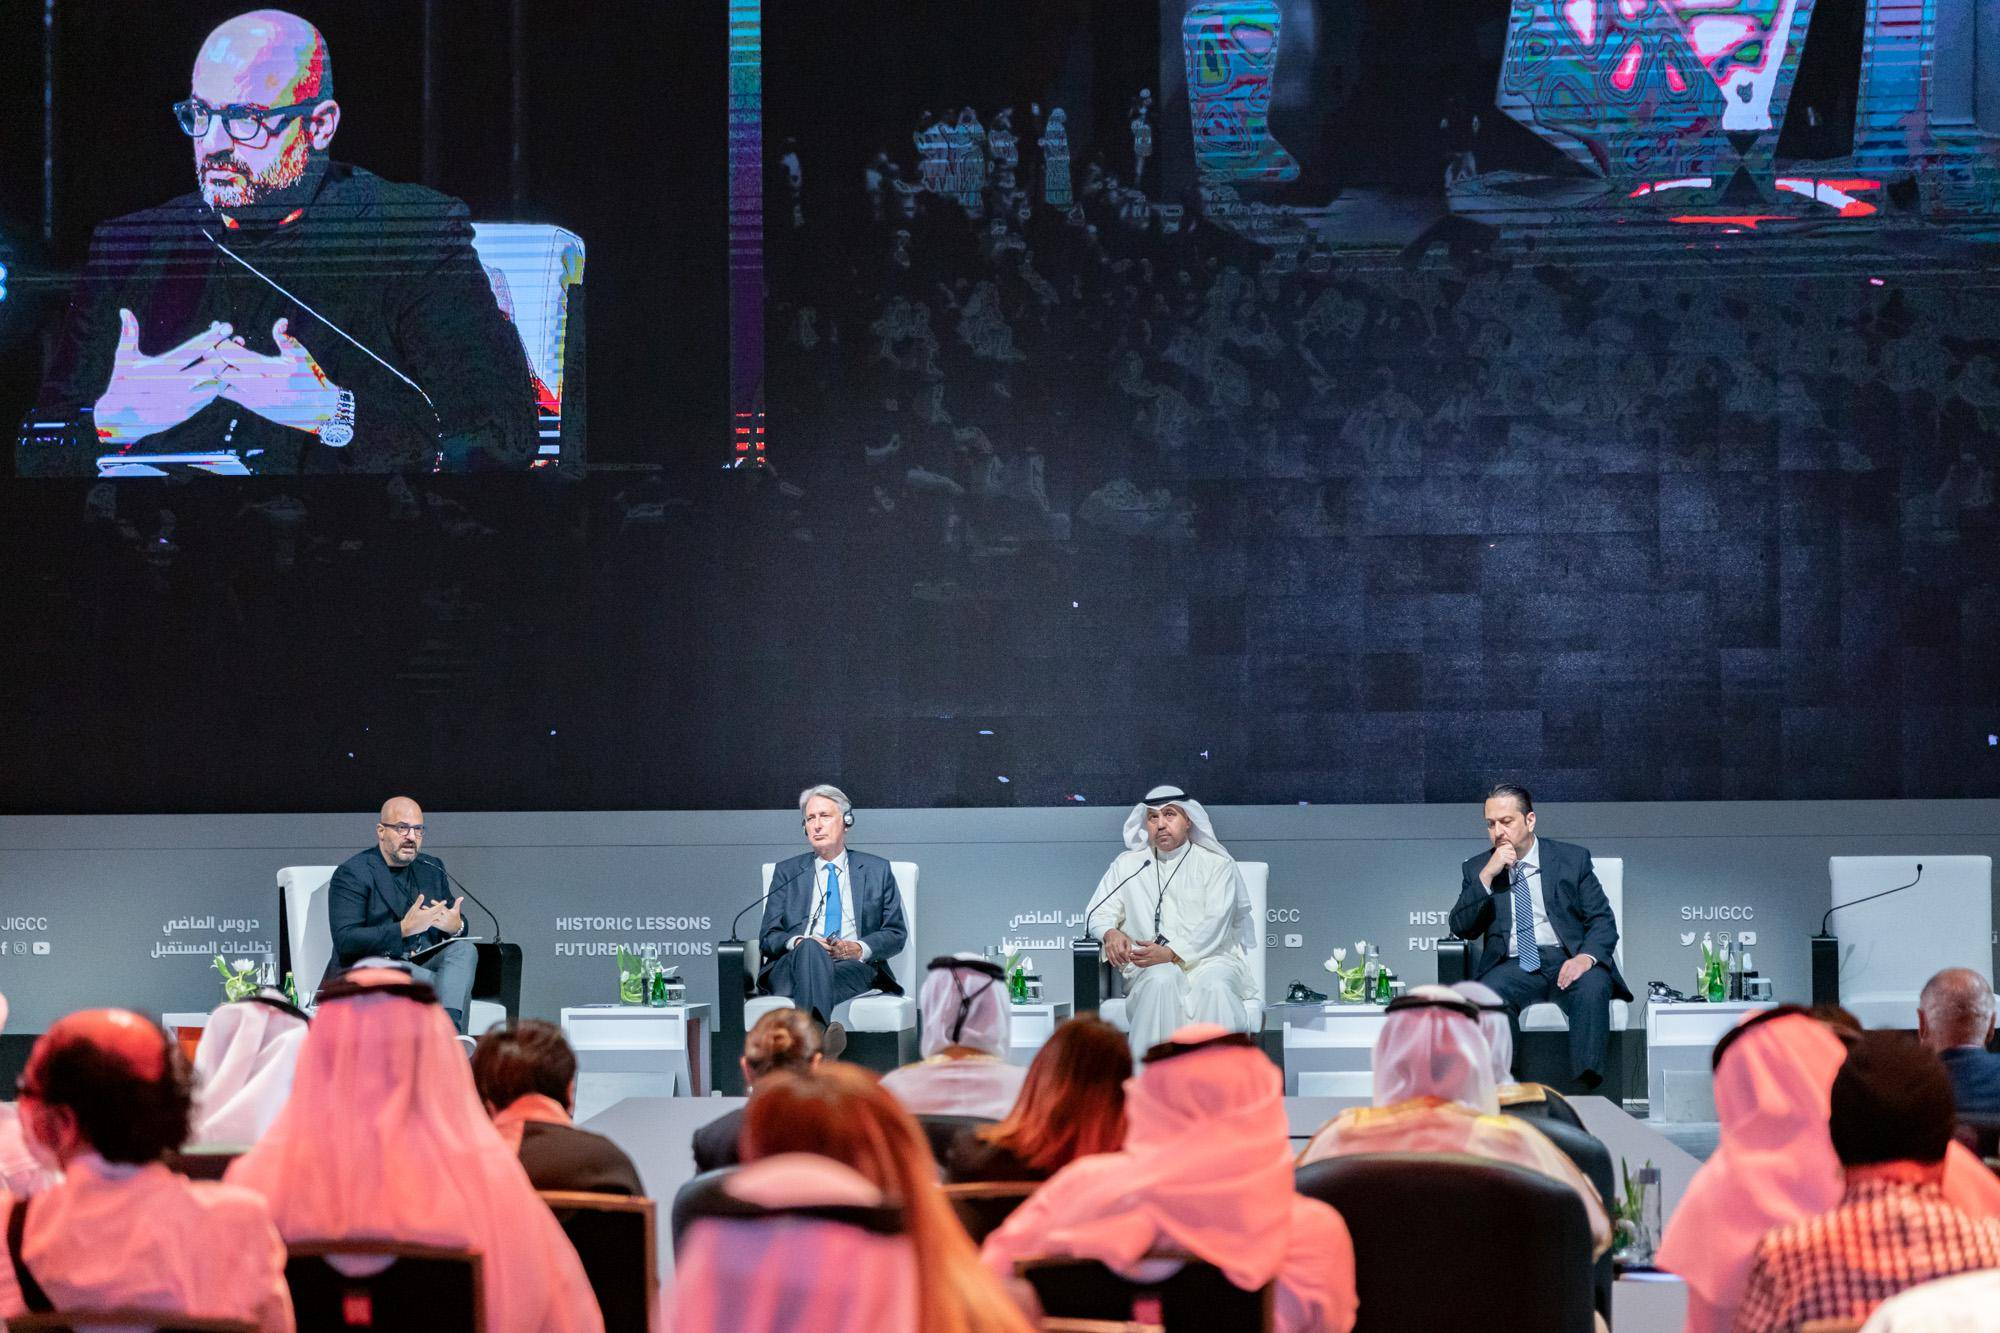 IGCF 2021: Conspiracy theories are a long-term challenge, says UK politician